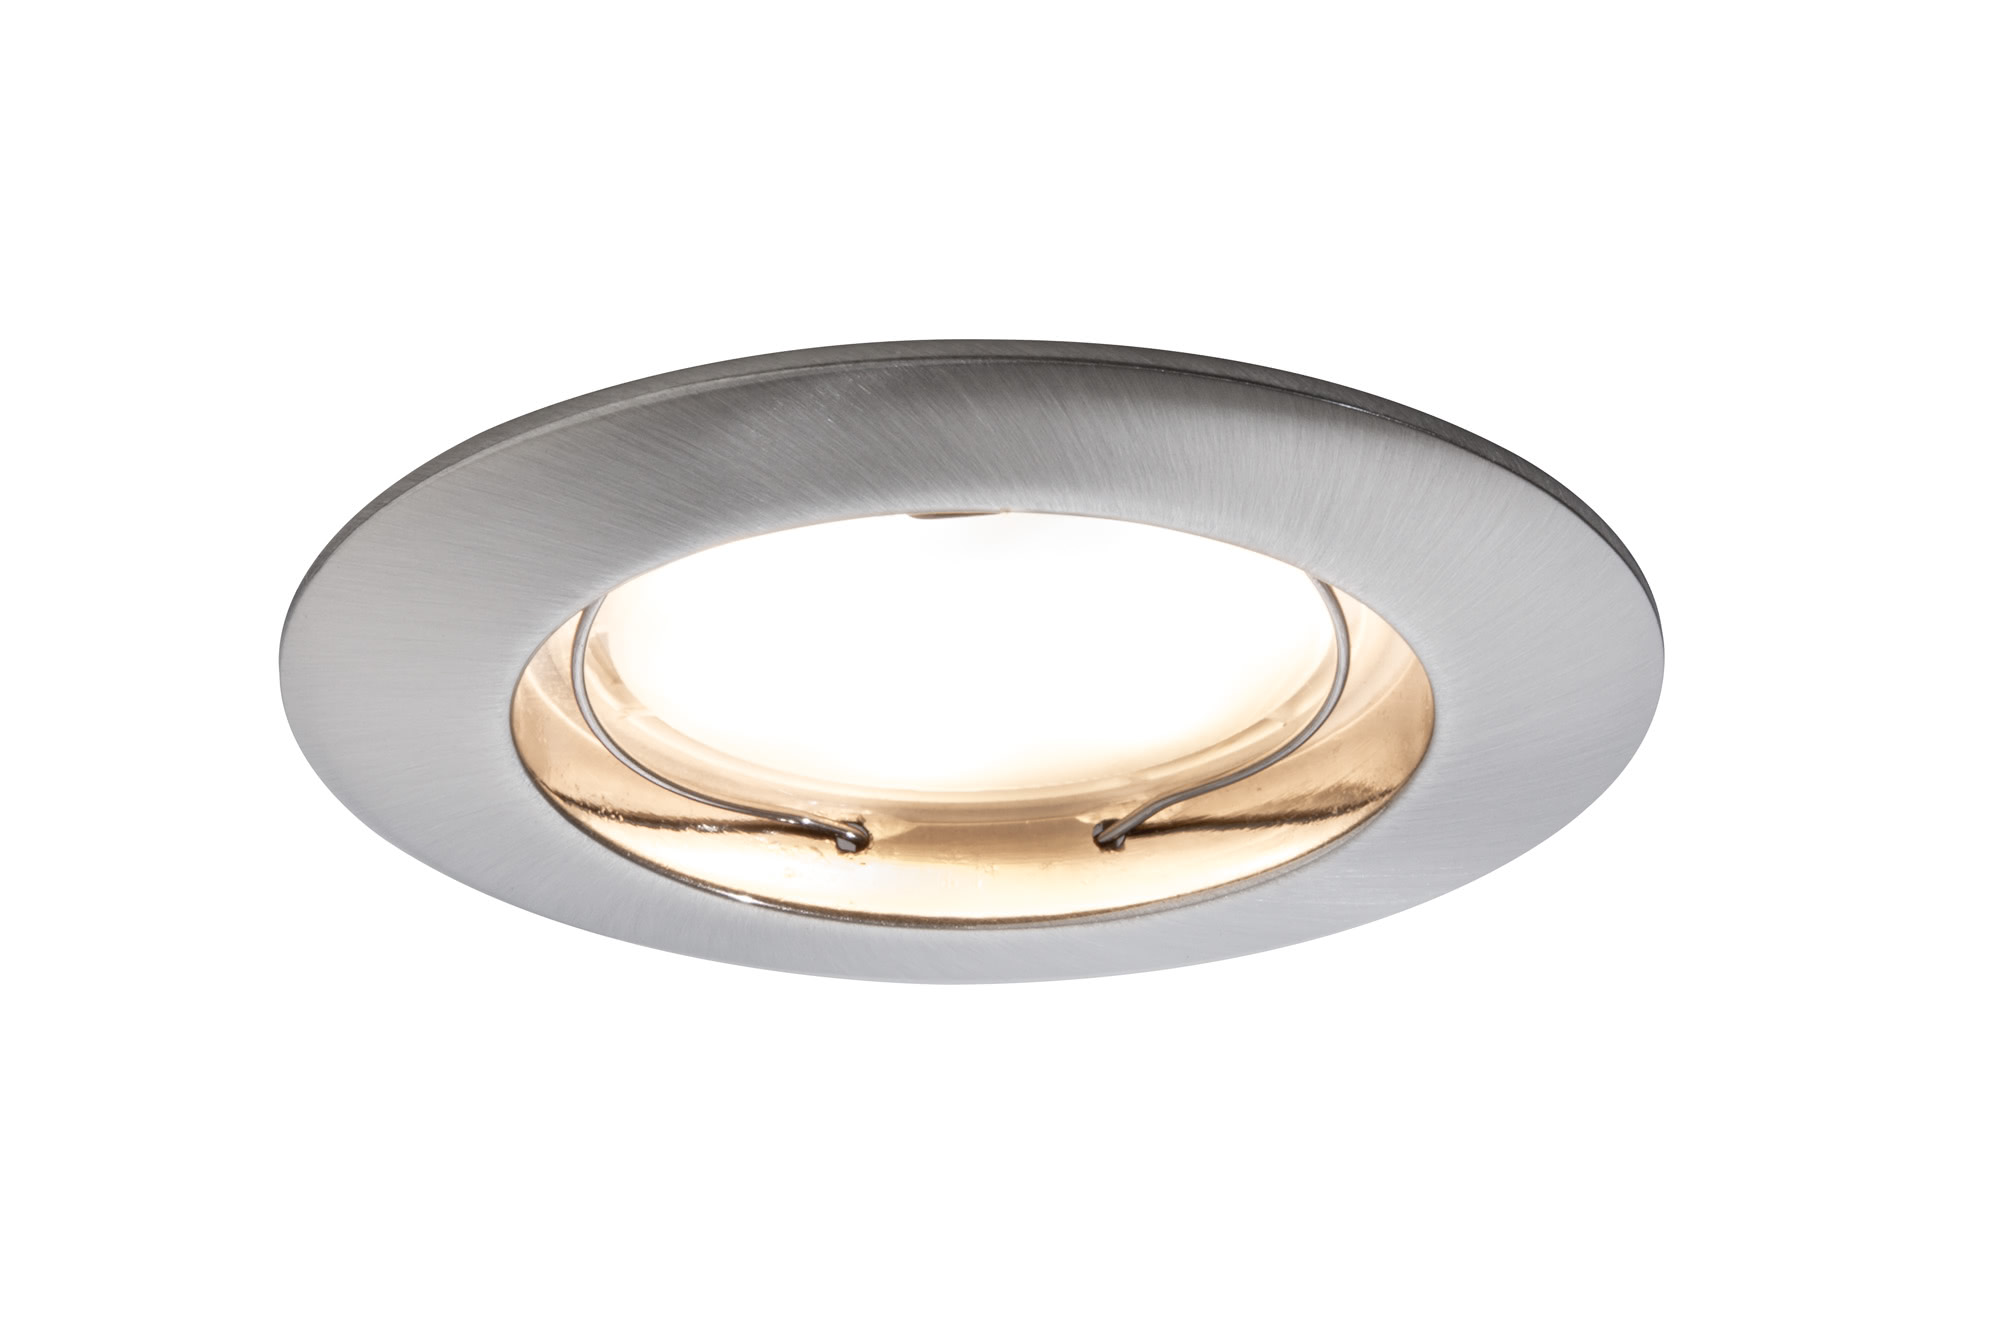 92722 Premium EBL Set Coin starr LED Eisen g. The Coins are innovative and user-friendly recessed spotlights that are suitable for new installations as well as replacing existing installations. Since they are exceptionally flat, they can be installed in ceilings with a cavity of only 30 to 35 millimetres. From 50 centimetres to 5 metres or more – you determine the spacing between the lights! The simple and tool-free linking of single luminaires using quick clips save more than just time and stress – thanks to energy-efficient LED technology with very lower power consumption, the Coins are also easy on the wallet. 927.22 Recessed luminaire LED Coin satined round 6.8W iron 3-piece set Paulmann